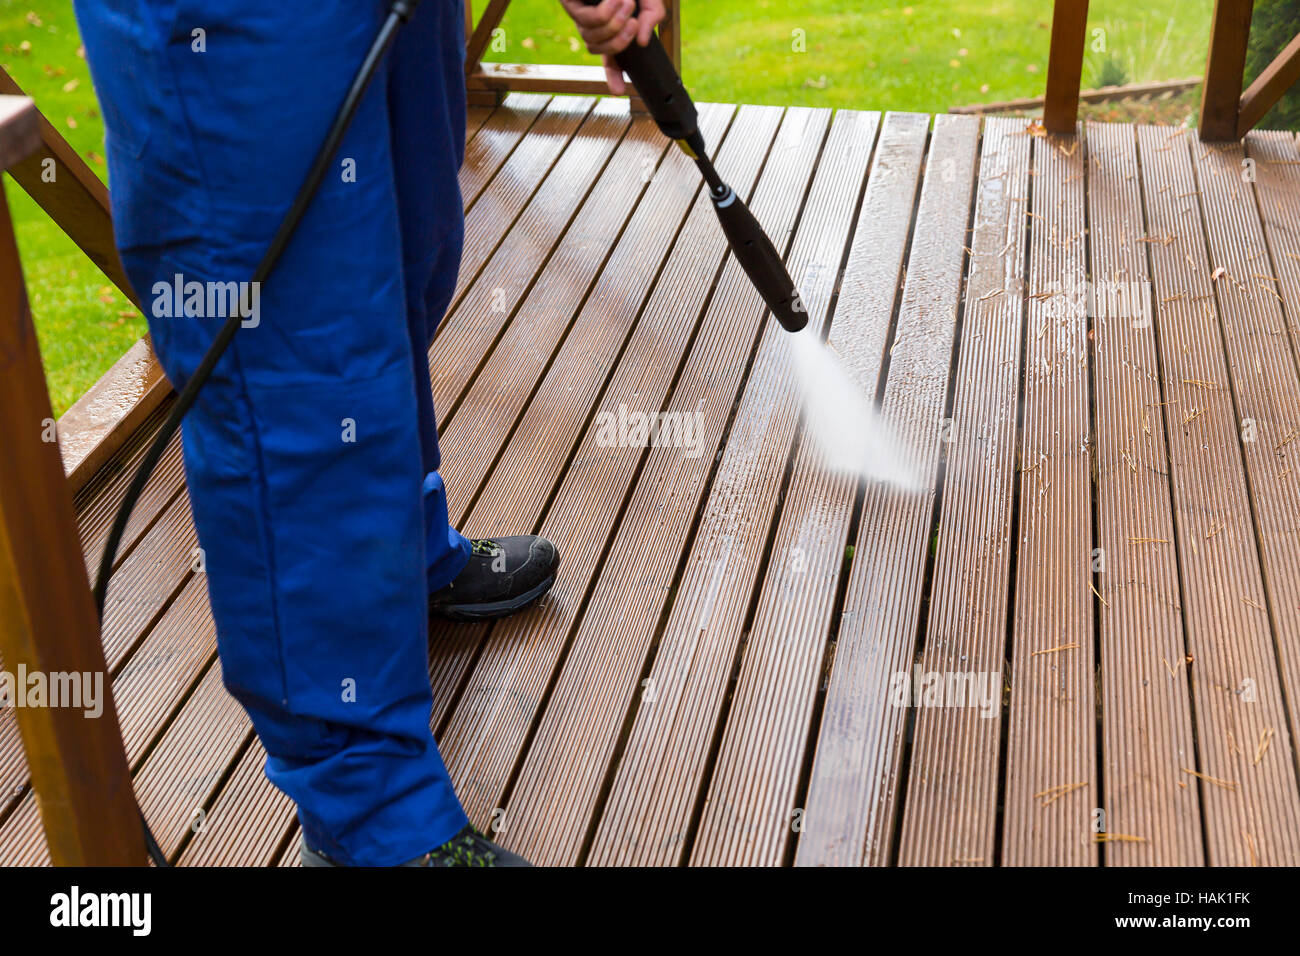 cleaning wooden terrace with high pressure washer - Stock Image